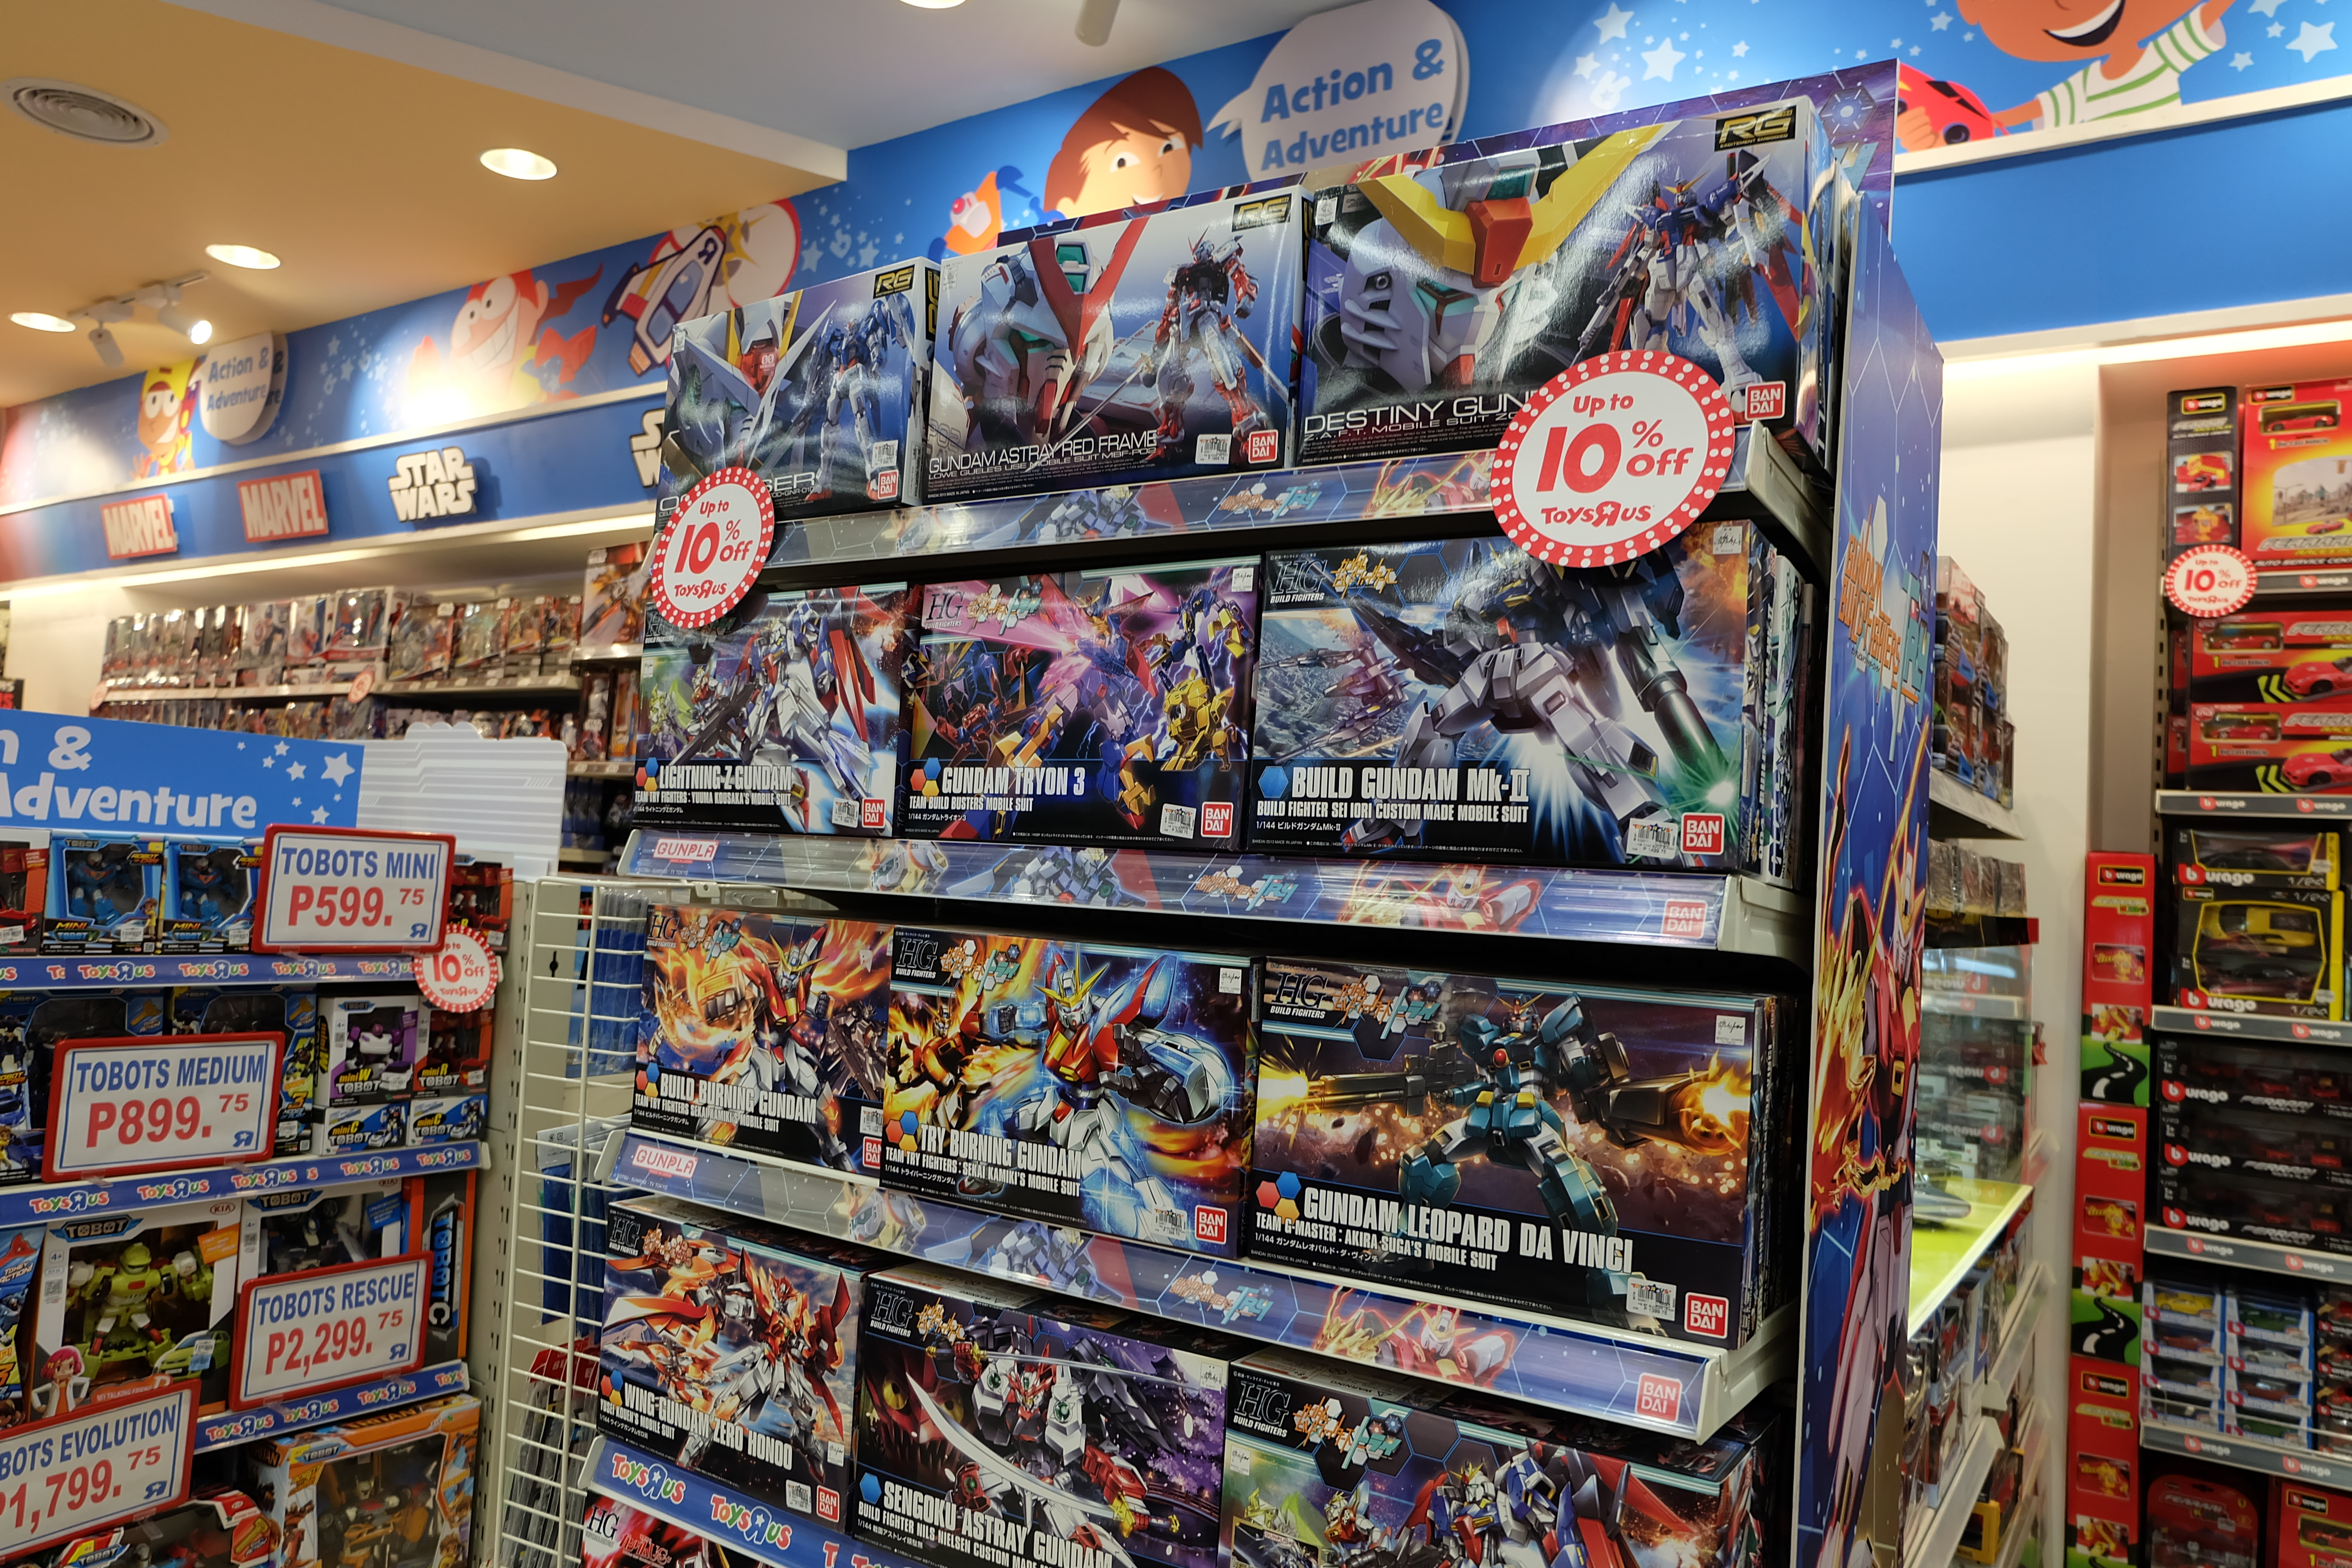 Toys R Us at The New Robinsons Galleria – Issaplease